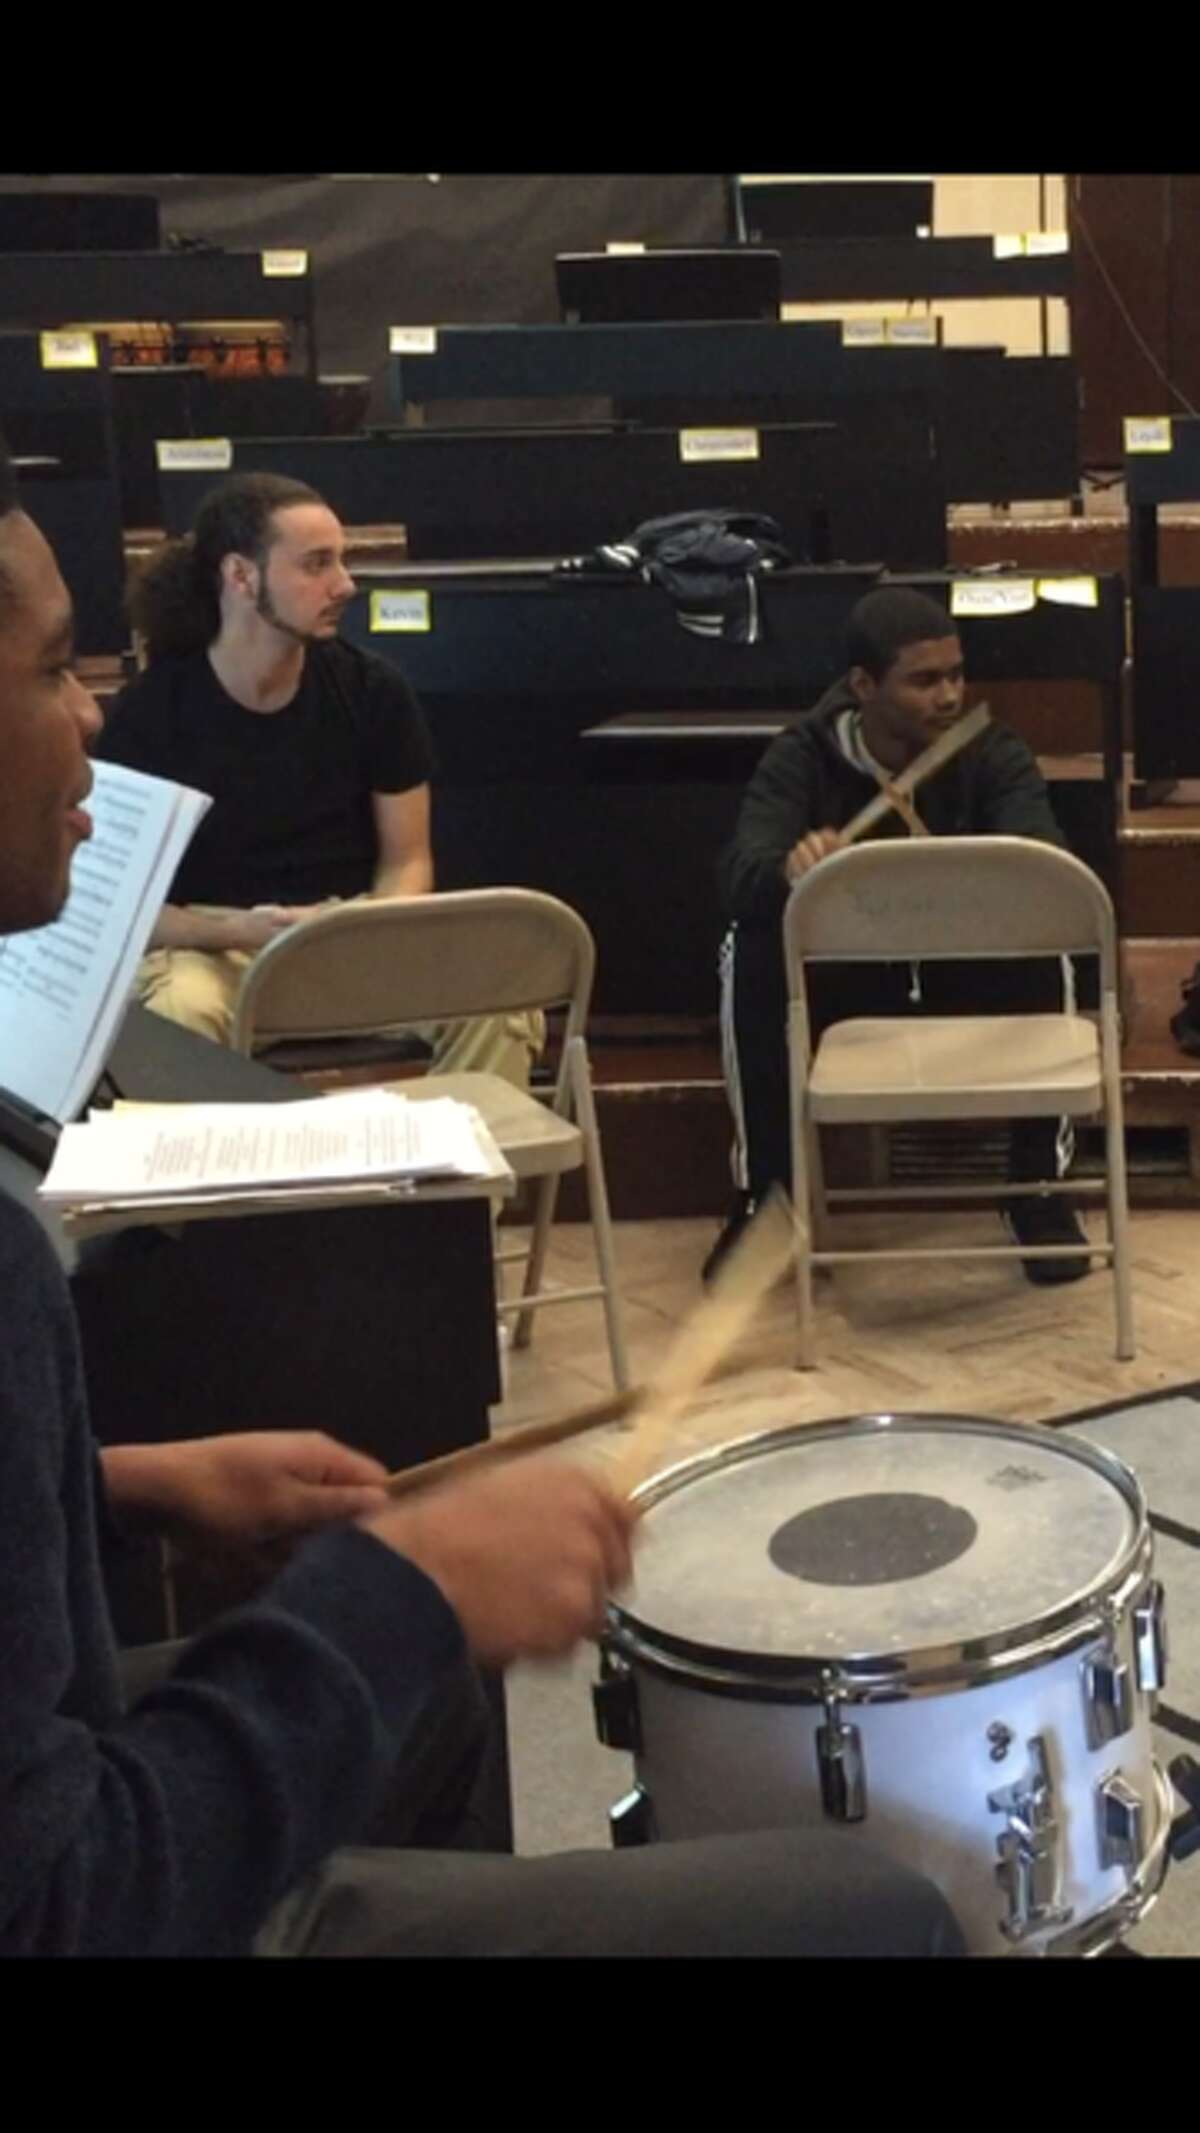 Sheena Graham, a music teacher at Bridgeport's Harding High School, asked for $4,597 to purchase tenor, snare and bass drums to start a new music physical fitness program - the most she has ever asked for from the site on behalf of her students.